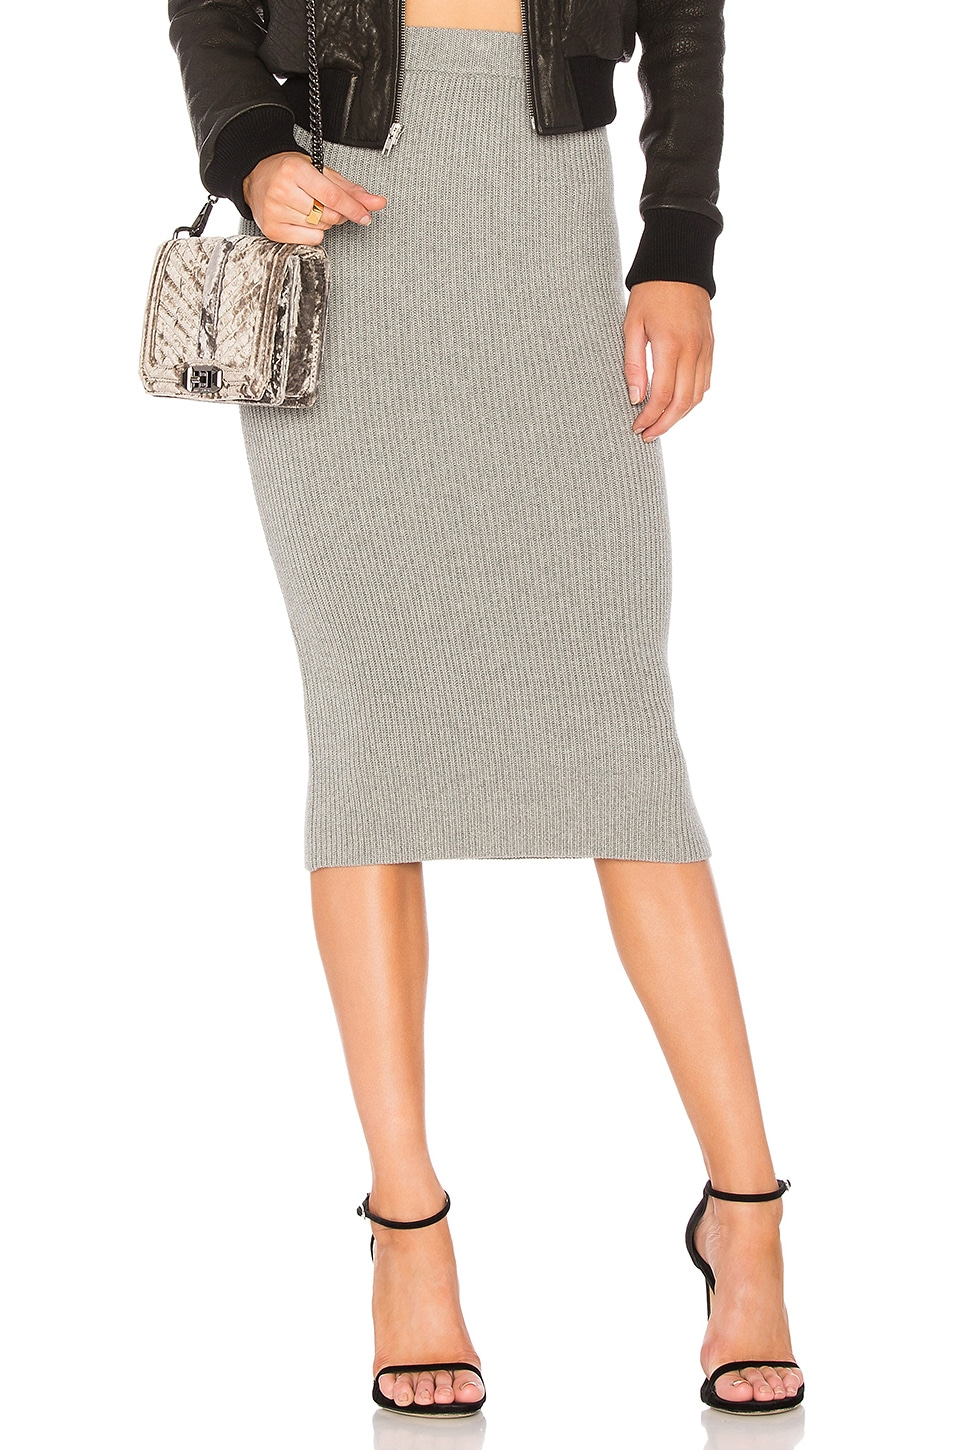 The Fifth Label Galactic Skirt in Grey Marle